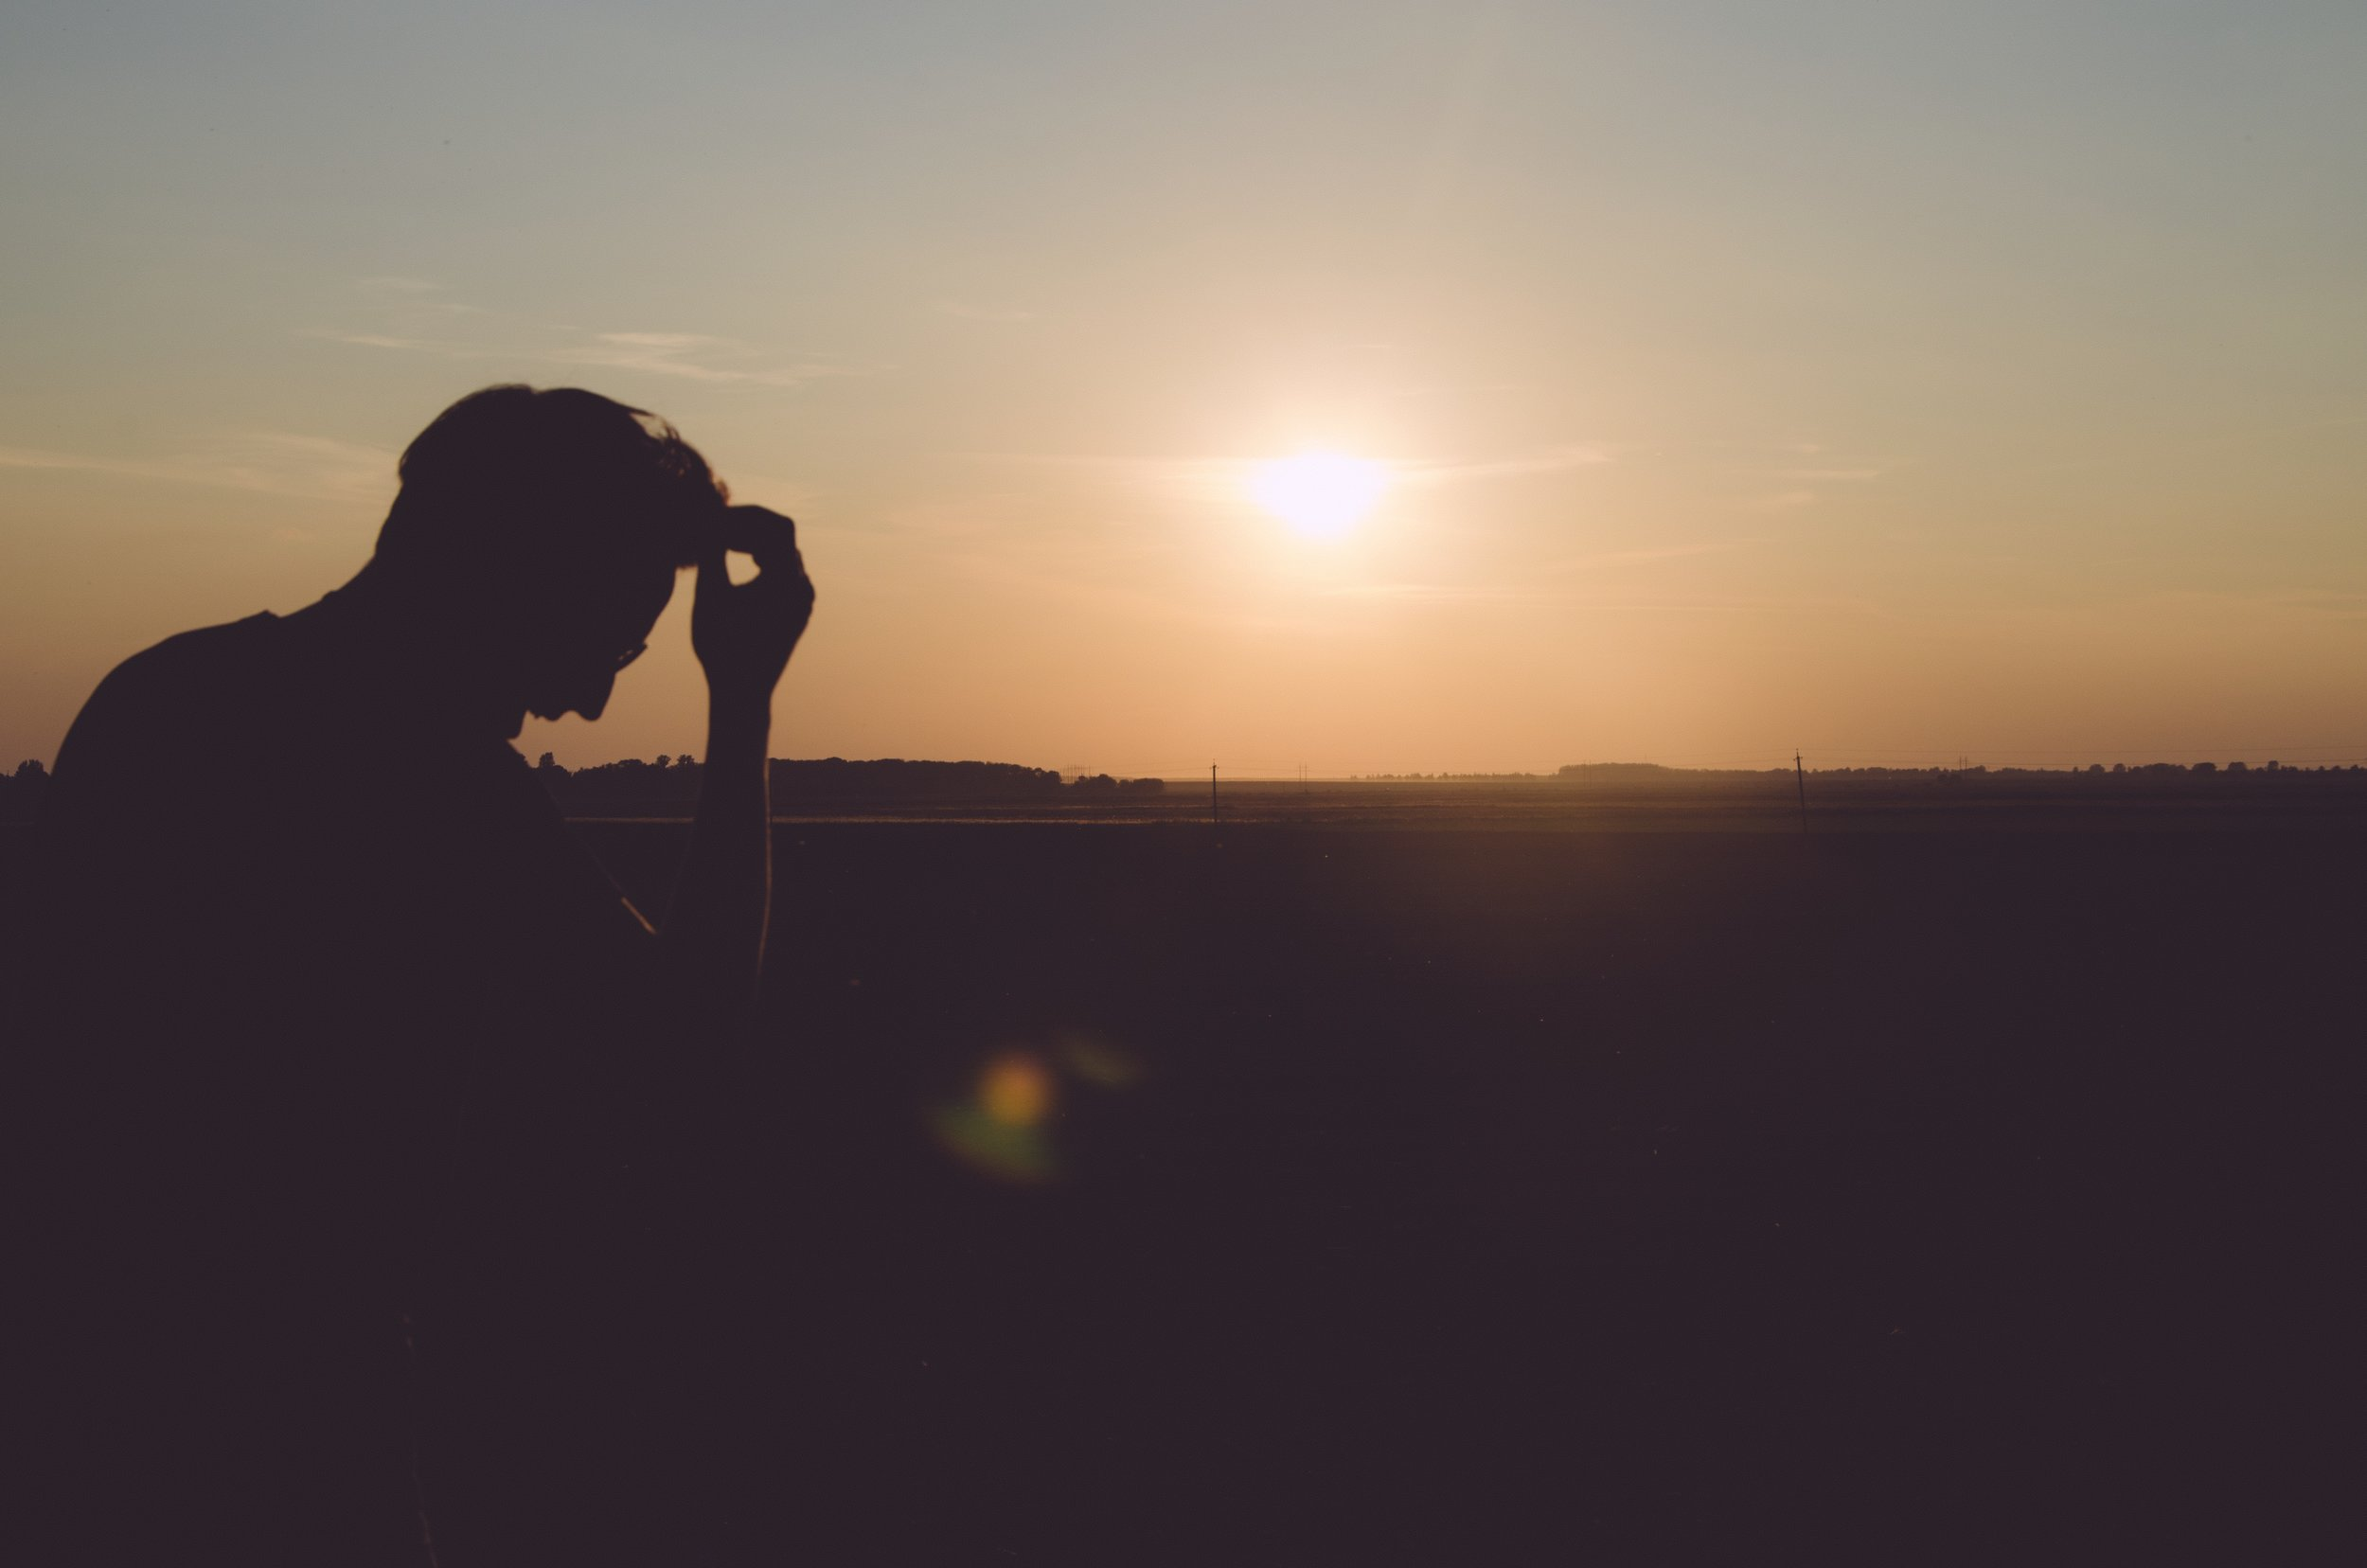 Overthinking man with sun setting in background